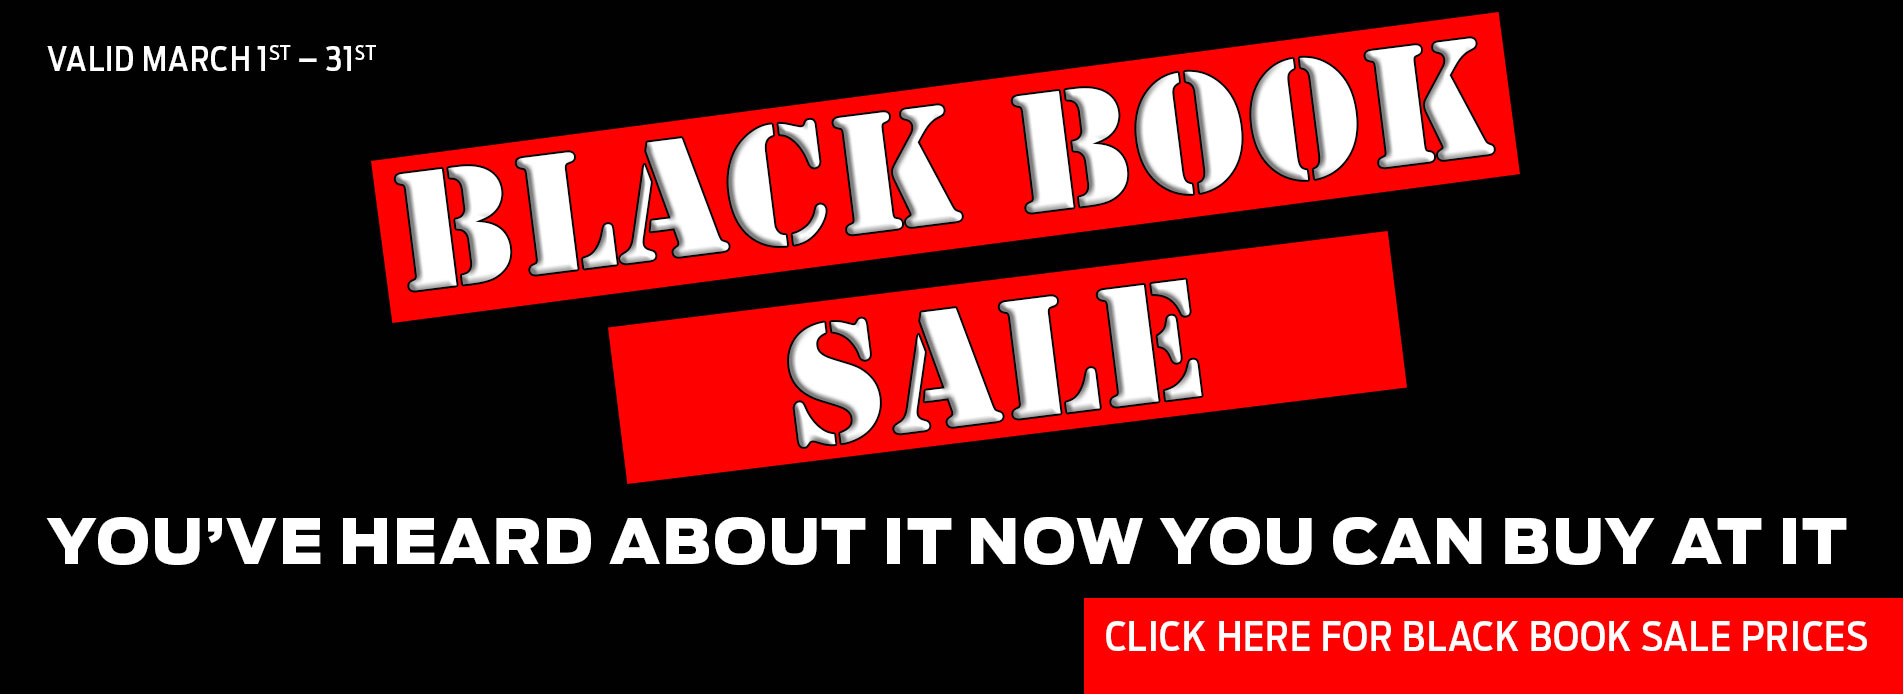 Black Book Sale at Snow Valley Ford March 1st to 31st!